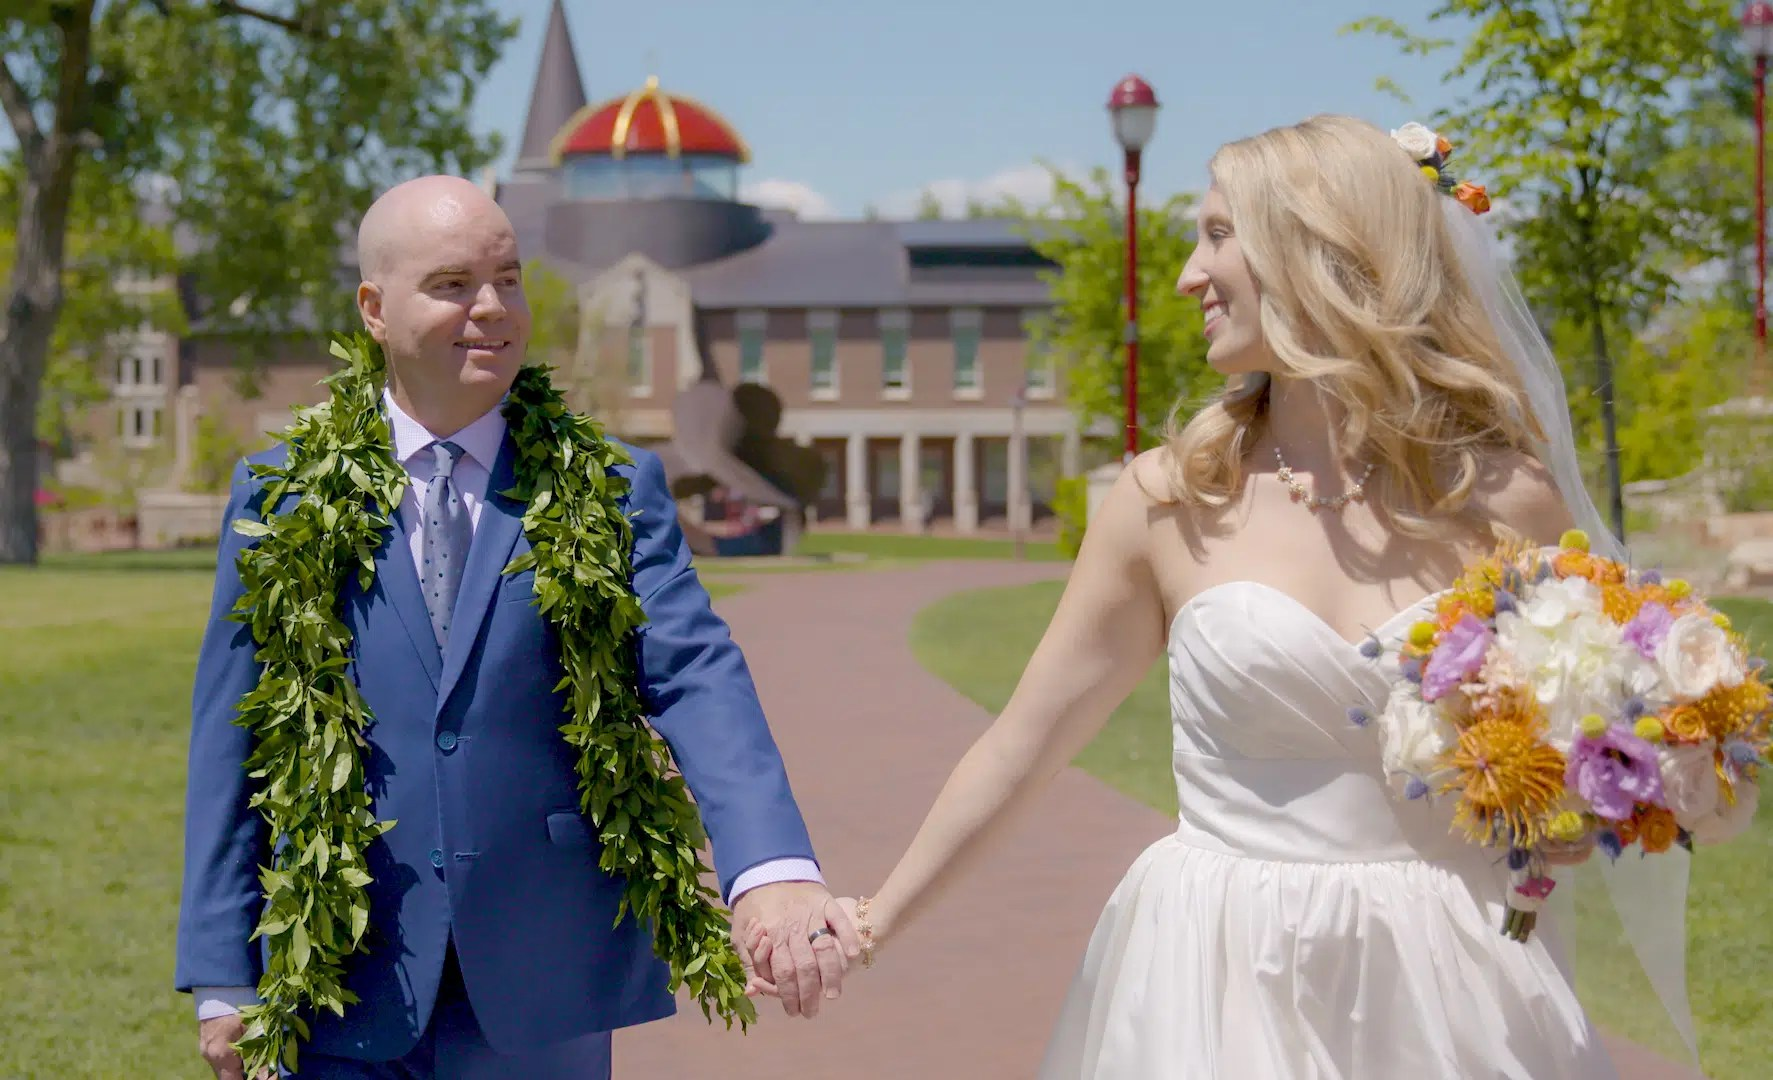 University of Denver Wedding Video